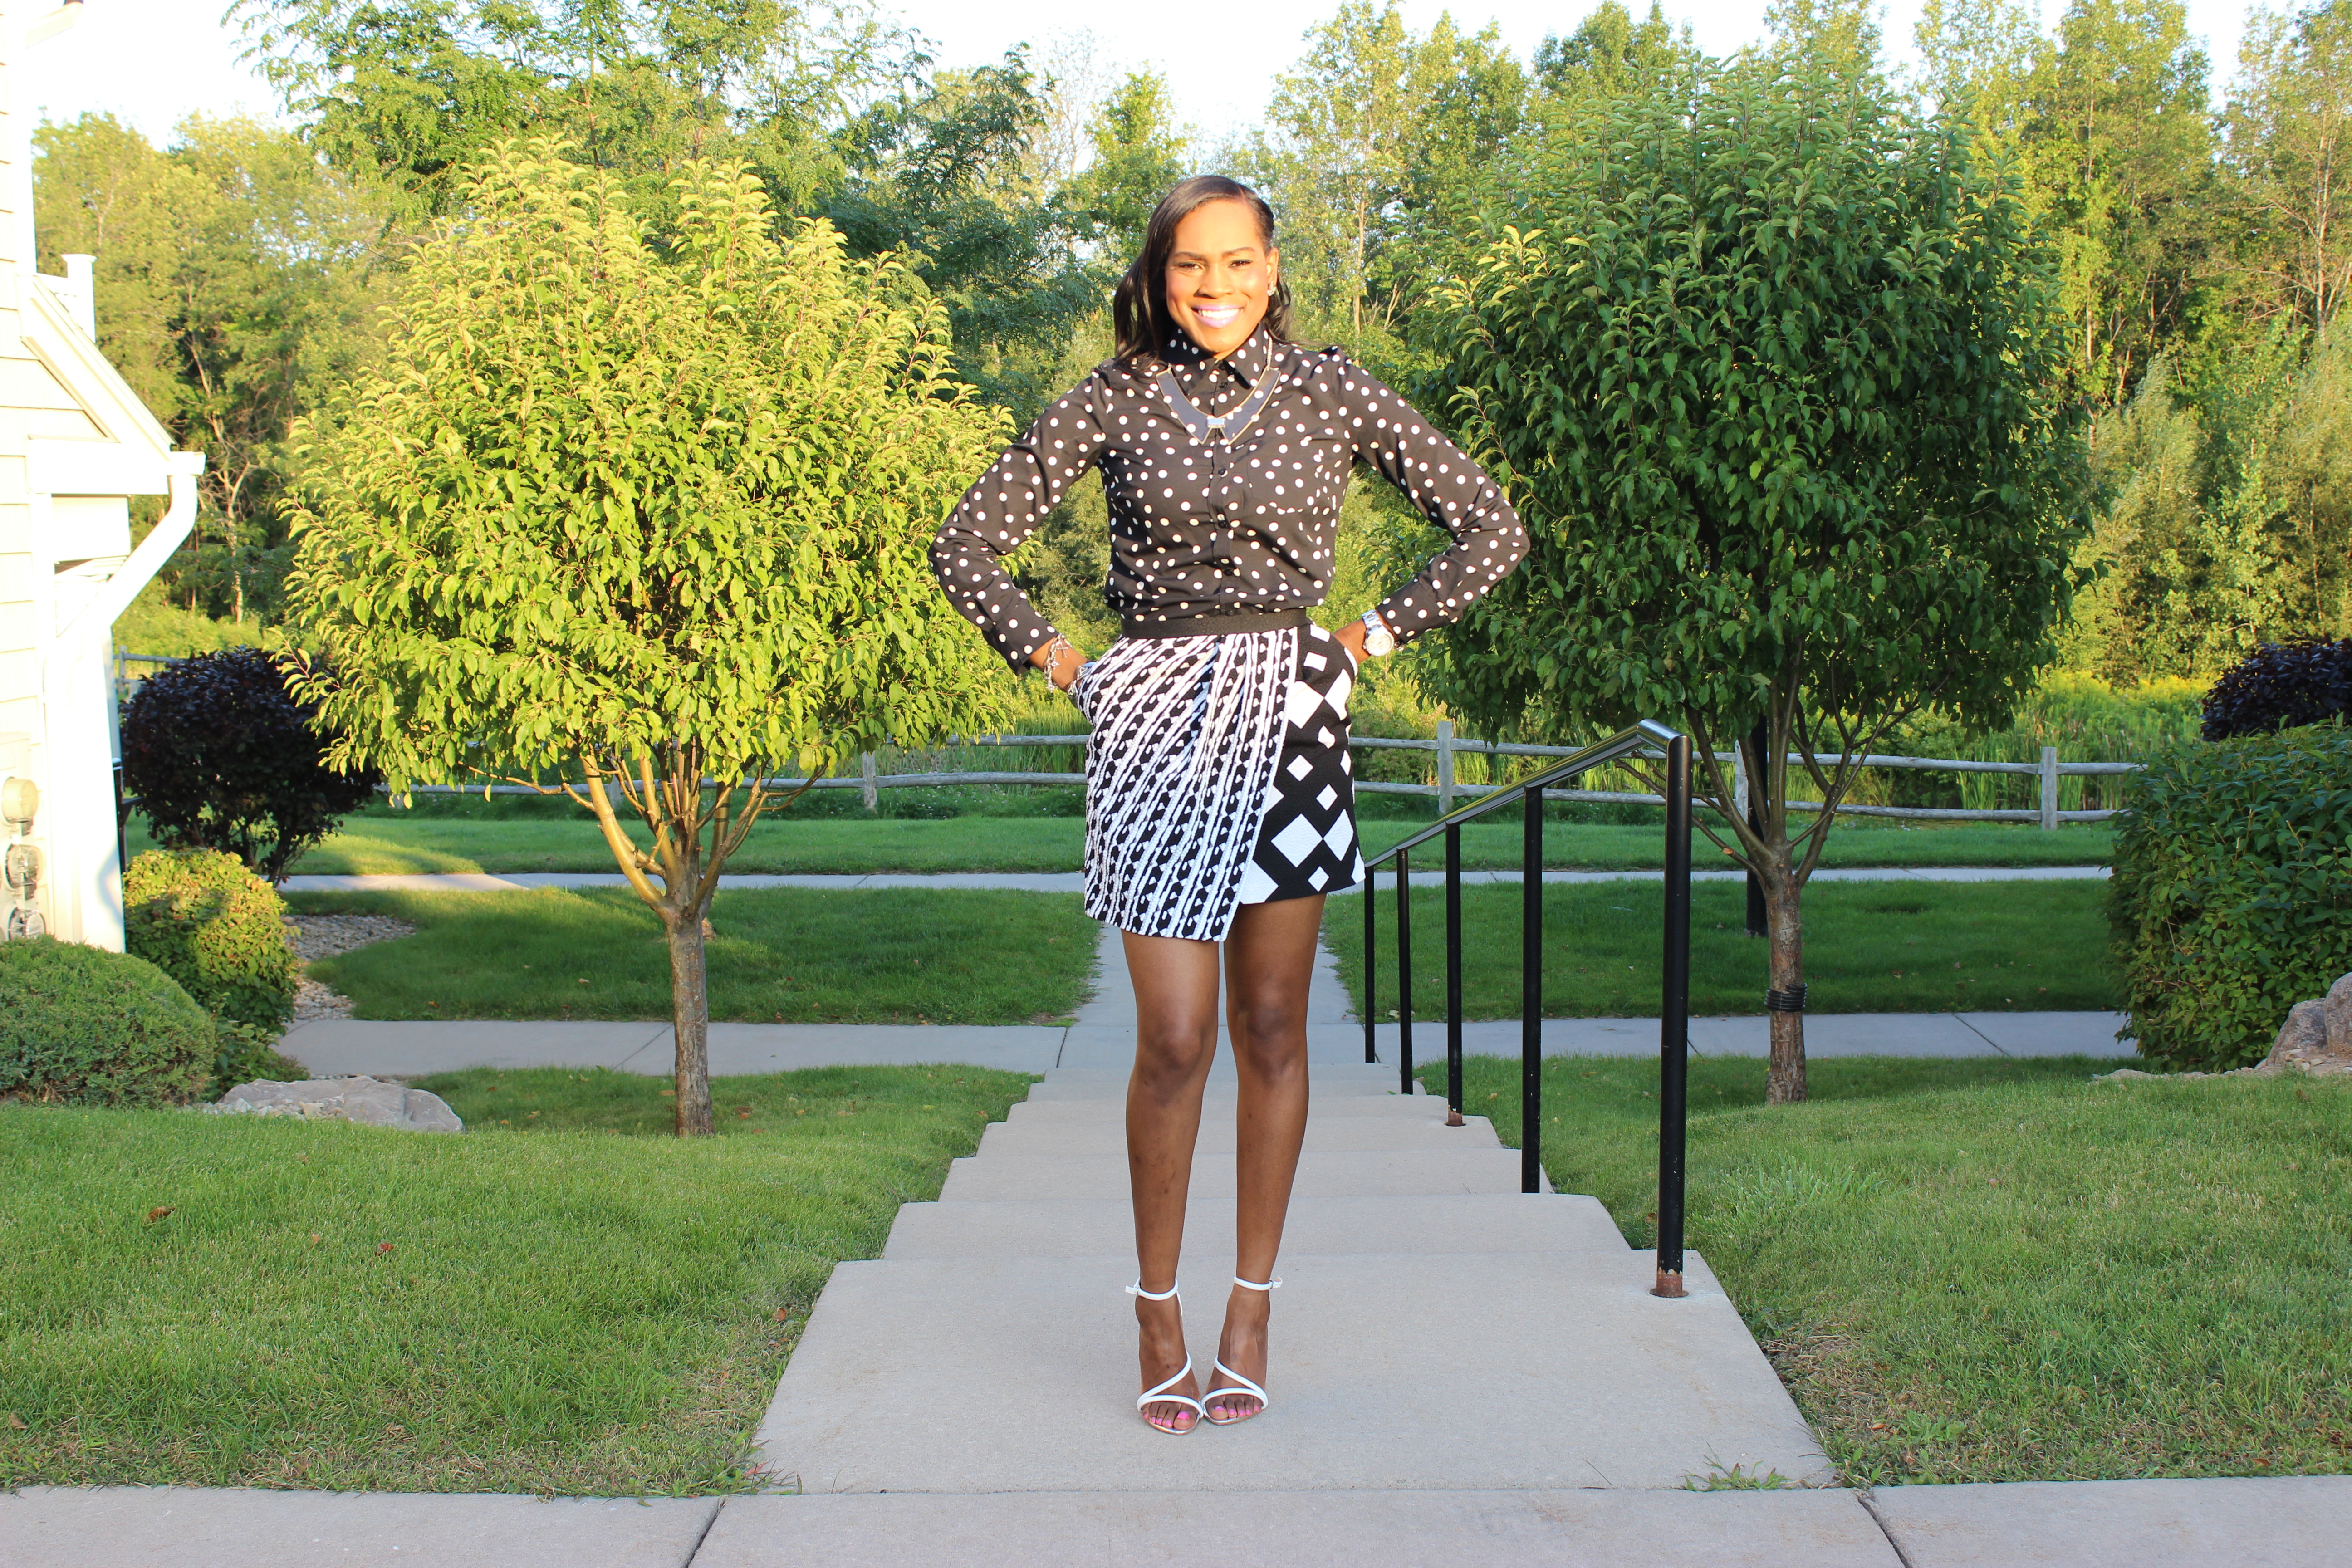 Style-Files-With-Pretty-Price-Merona-black-and-white-Polka-dot-blouse-Peter-Pilotto for target -black-and-white-skirt-Zara-white- HIGH HEEL STRAPPY SANDALS-2